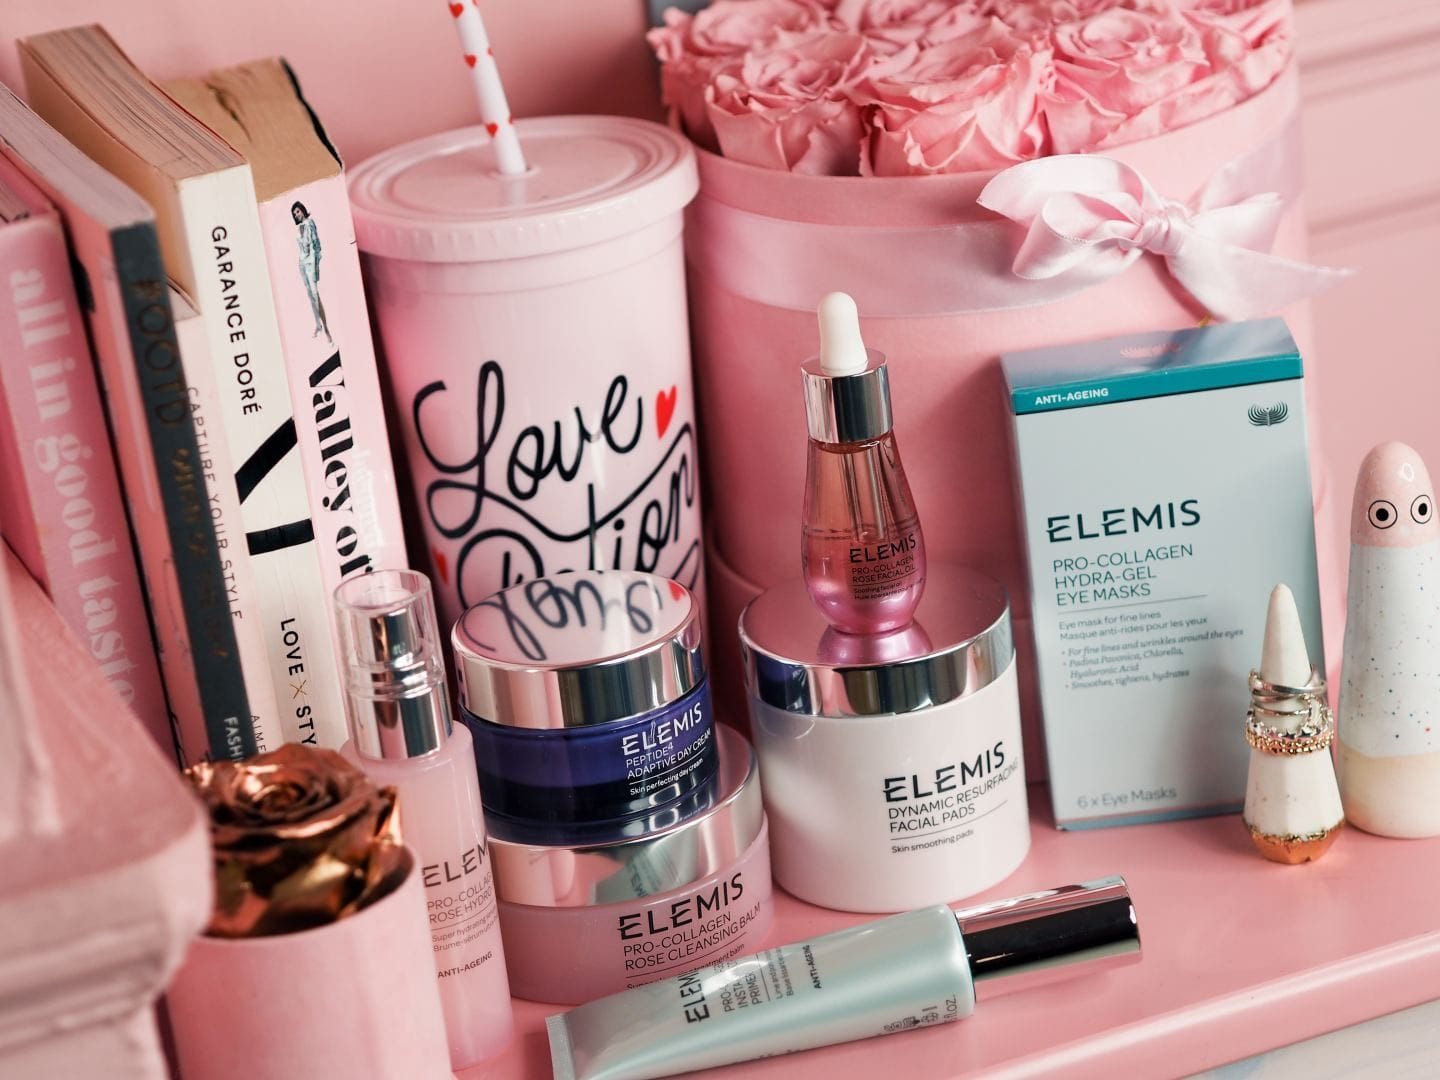 Katie Jane Hughes' Shares Her Top Tips For Creating Perfectly Glossy Skin elemis skin care